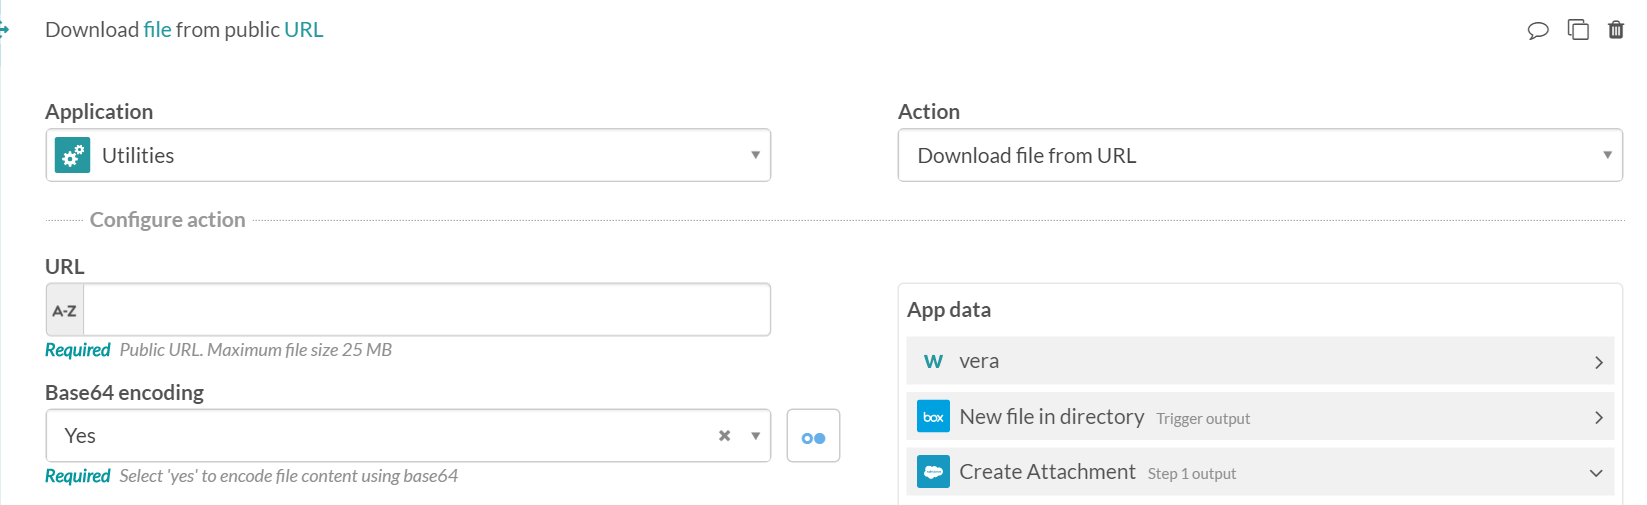 Downloading and uploading attachments in Salesforce